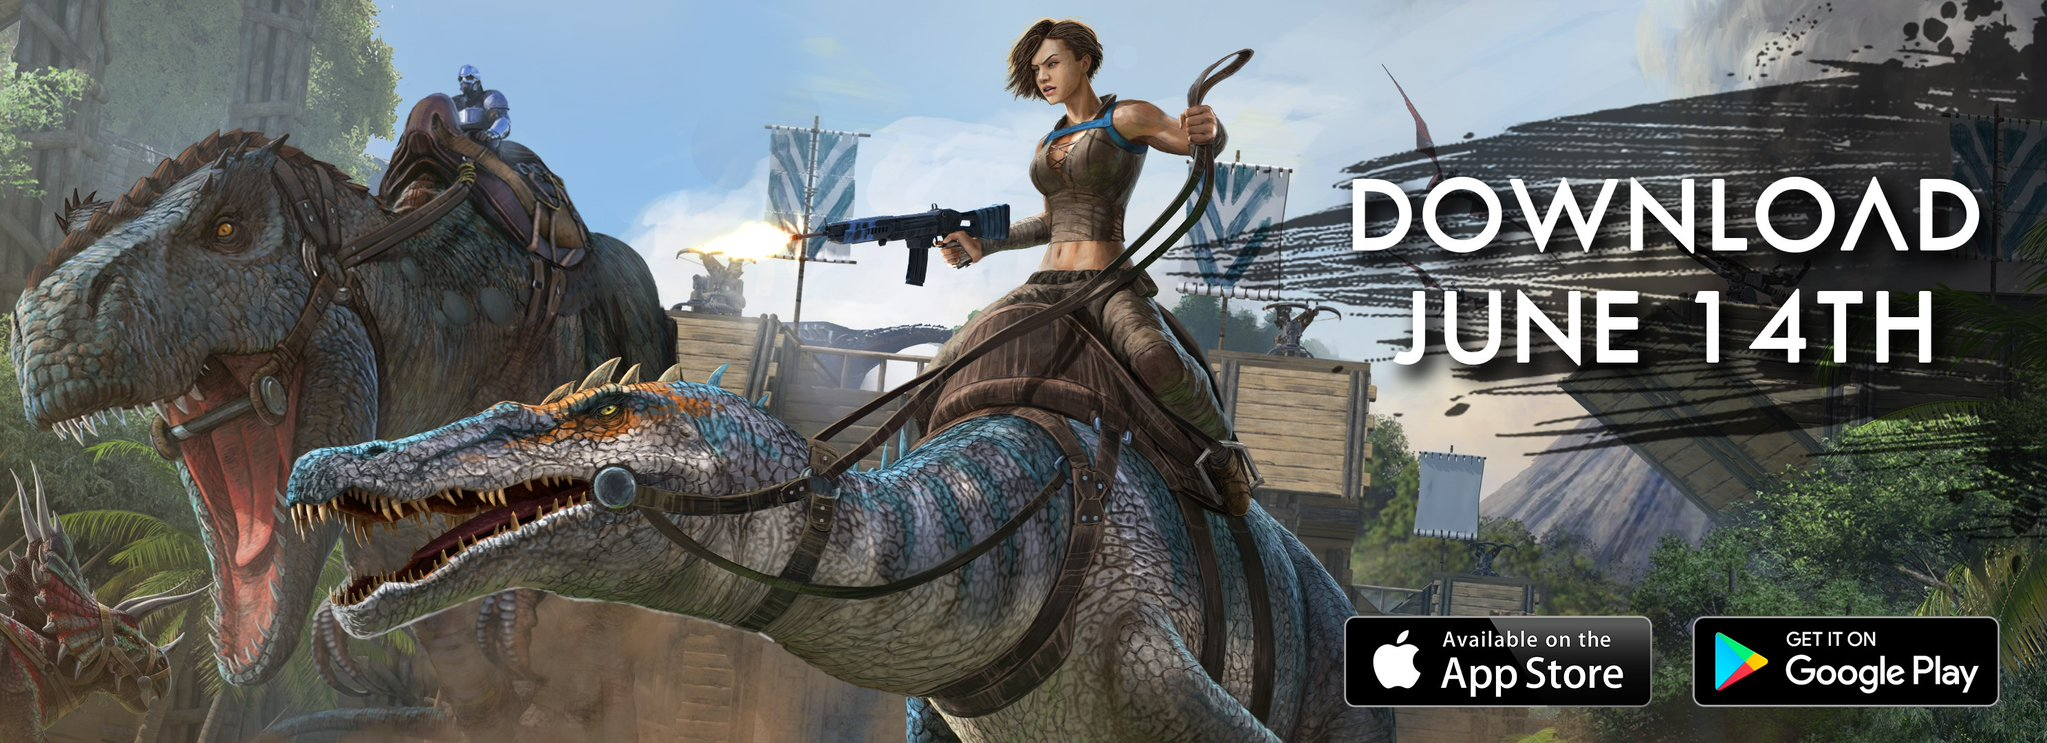 I Am Alone Wallpapers 3d Hit Pc And Console Game Ark Survival Evolved Has Arrived